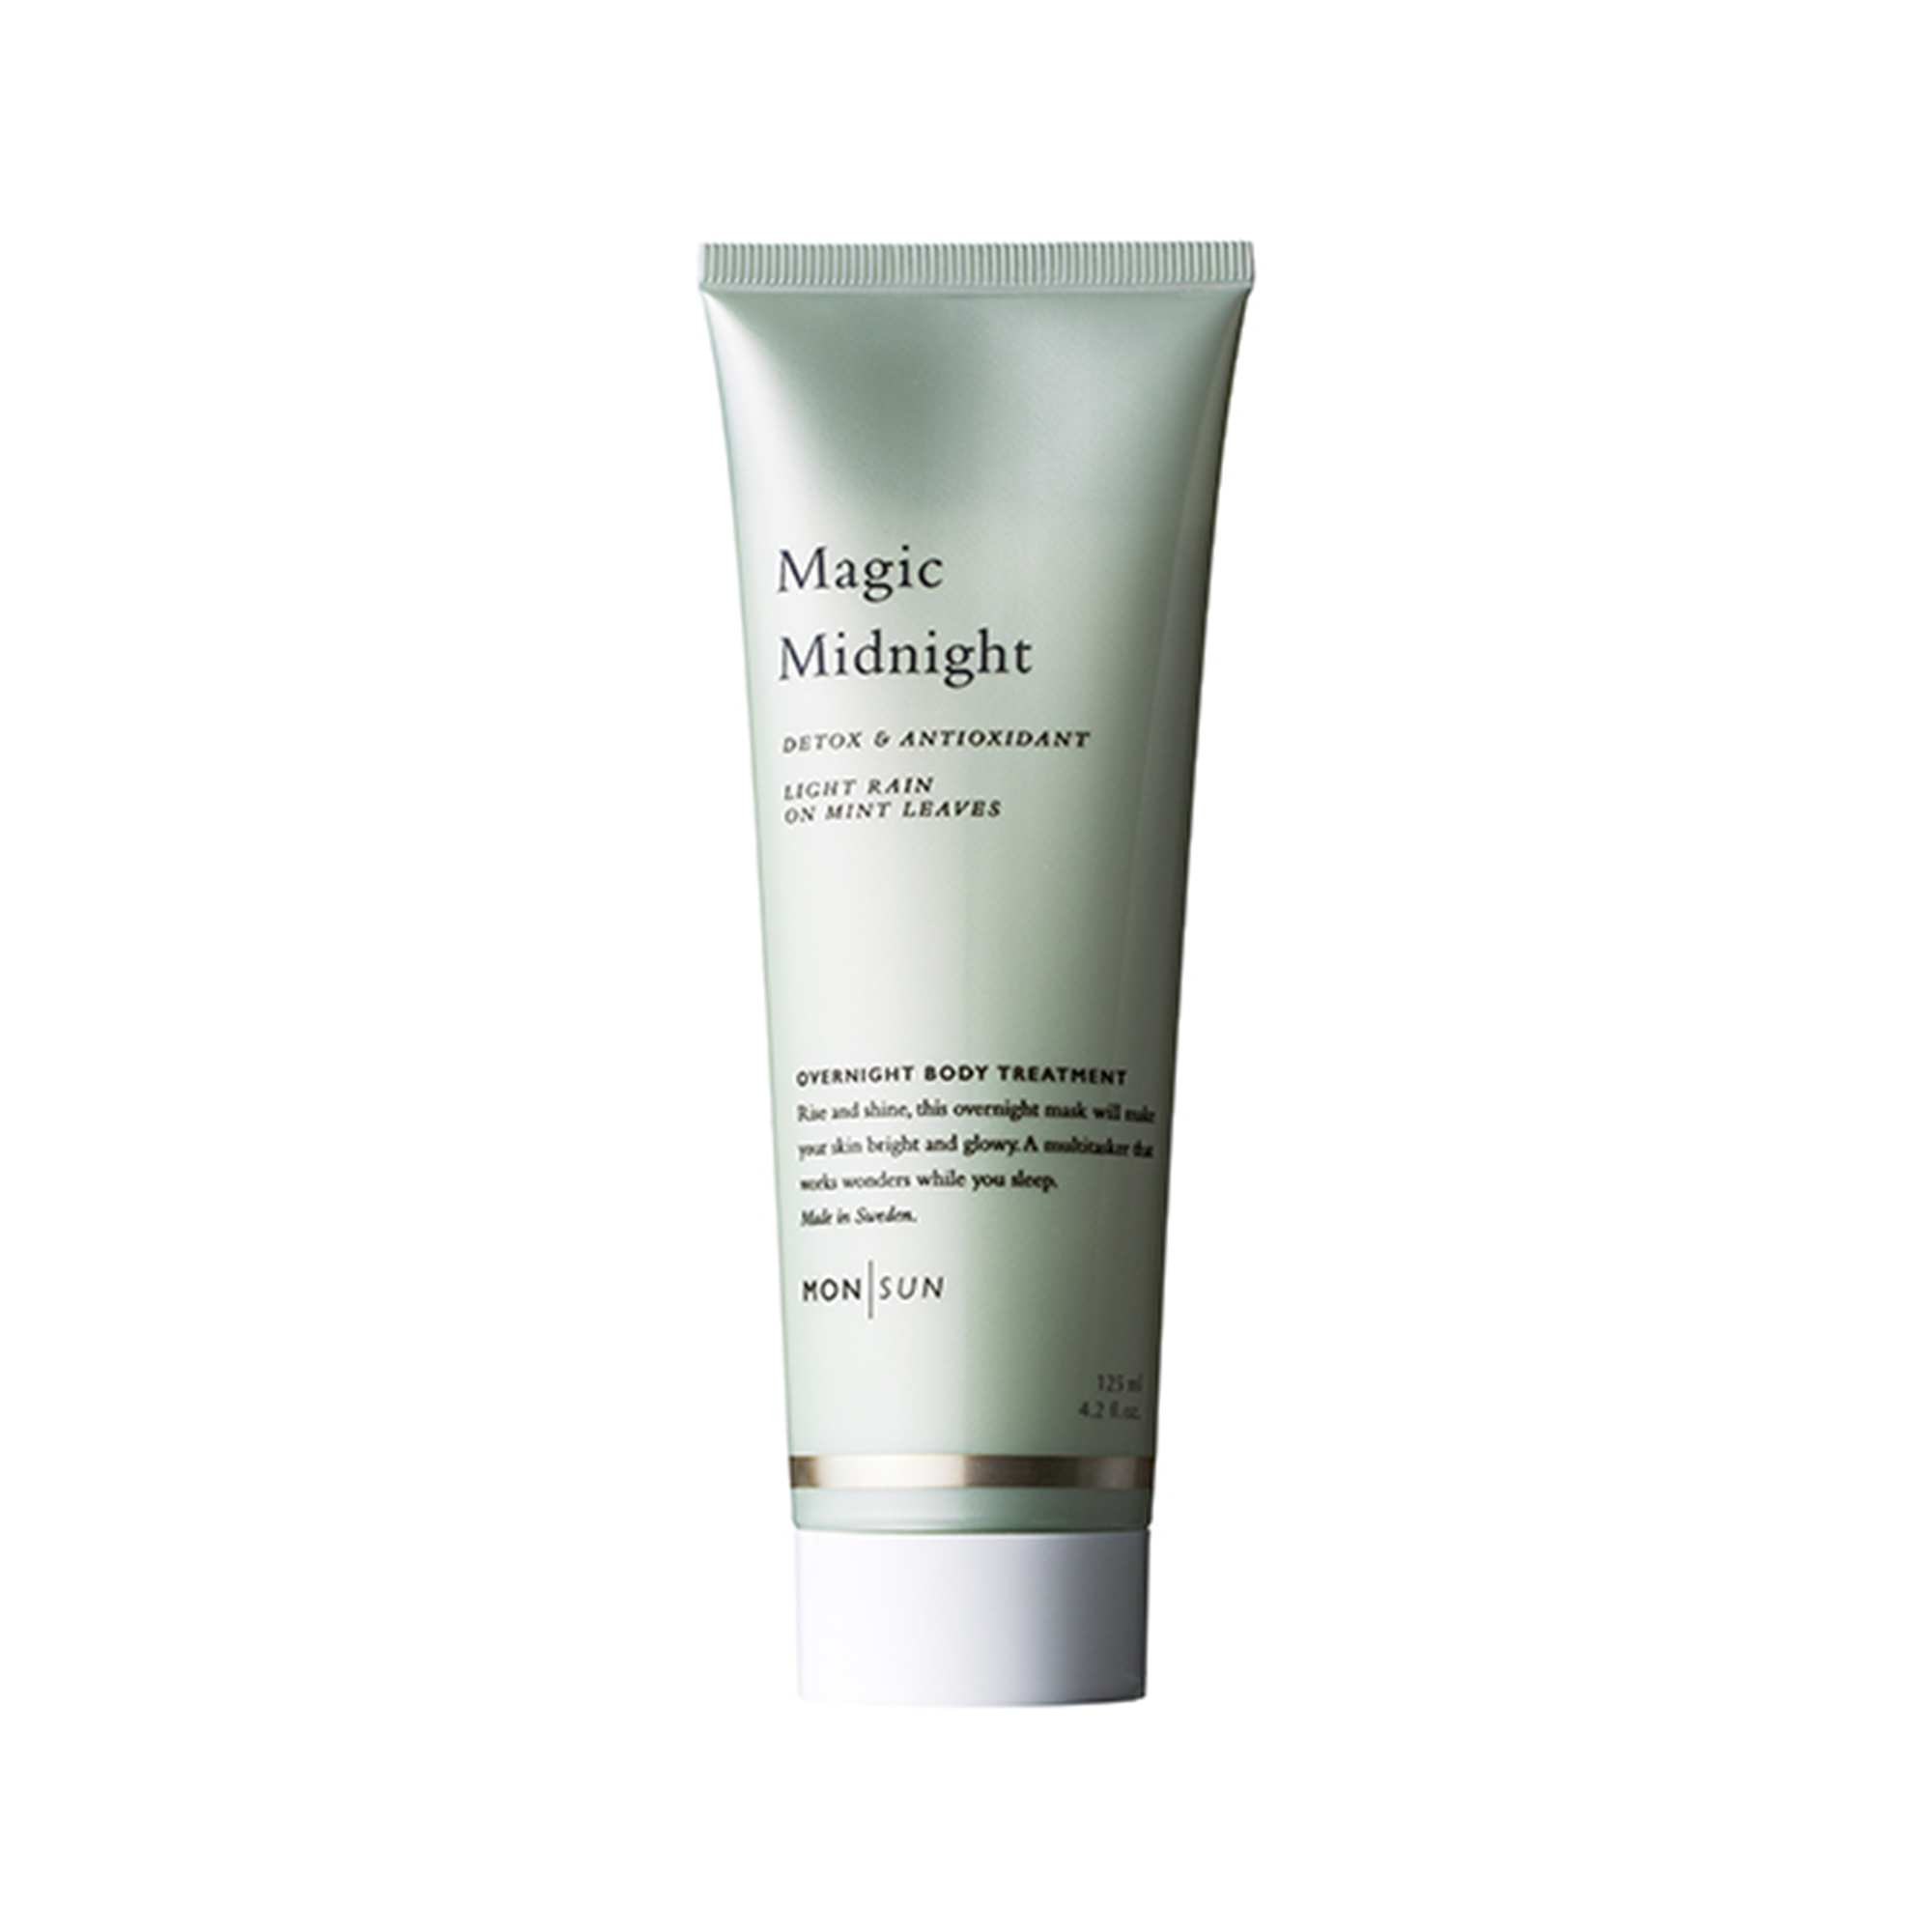 Magic Midnight Detox & Antioxidant Overnight Body Treatment 125 ml